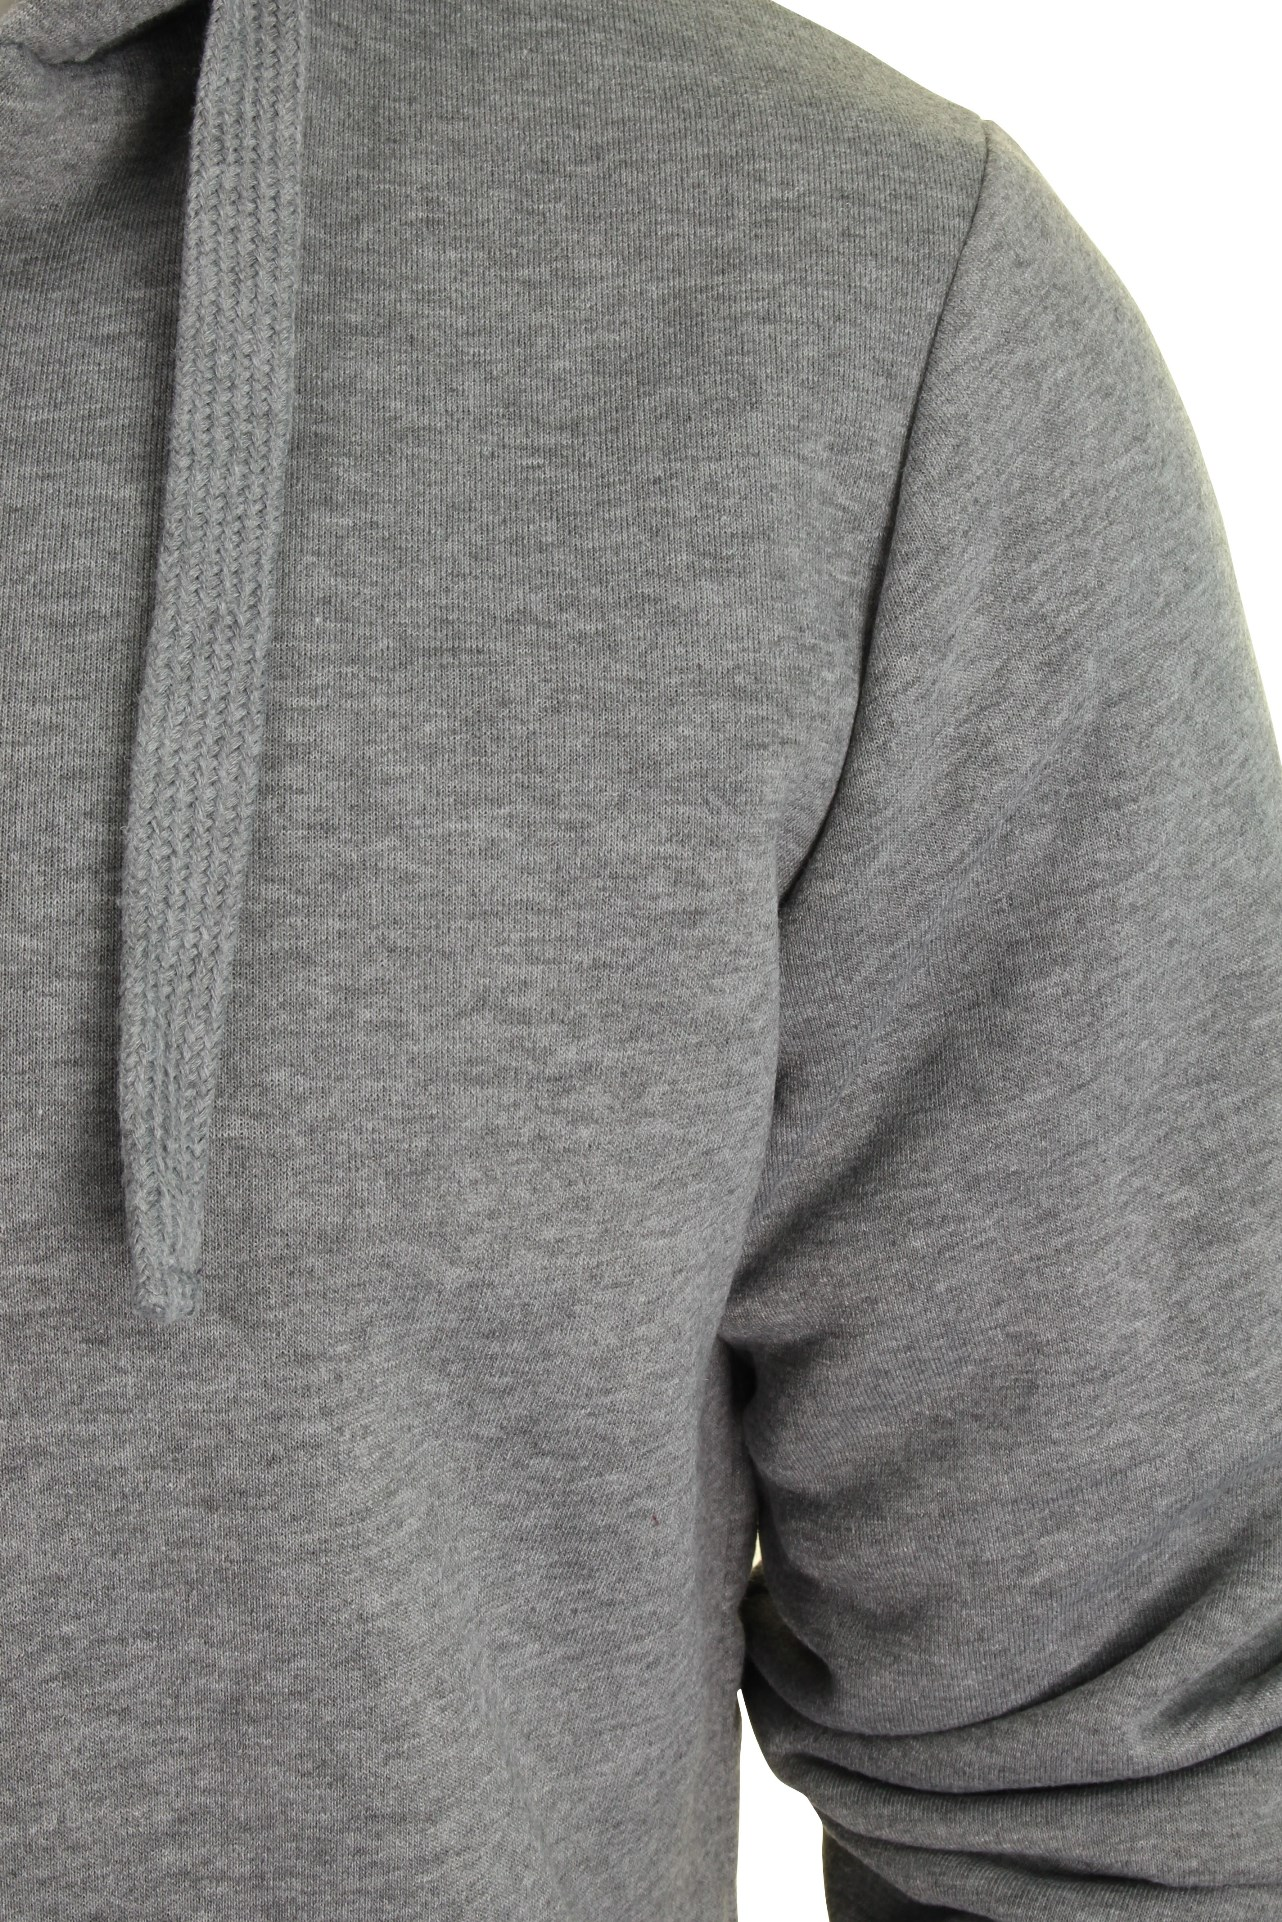 Mens-Dissident-Hoodie-039-Bolo-2-039-Fleece-Lined-Hood-amp-Body thumbnail 7